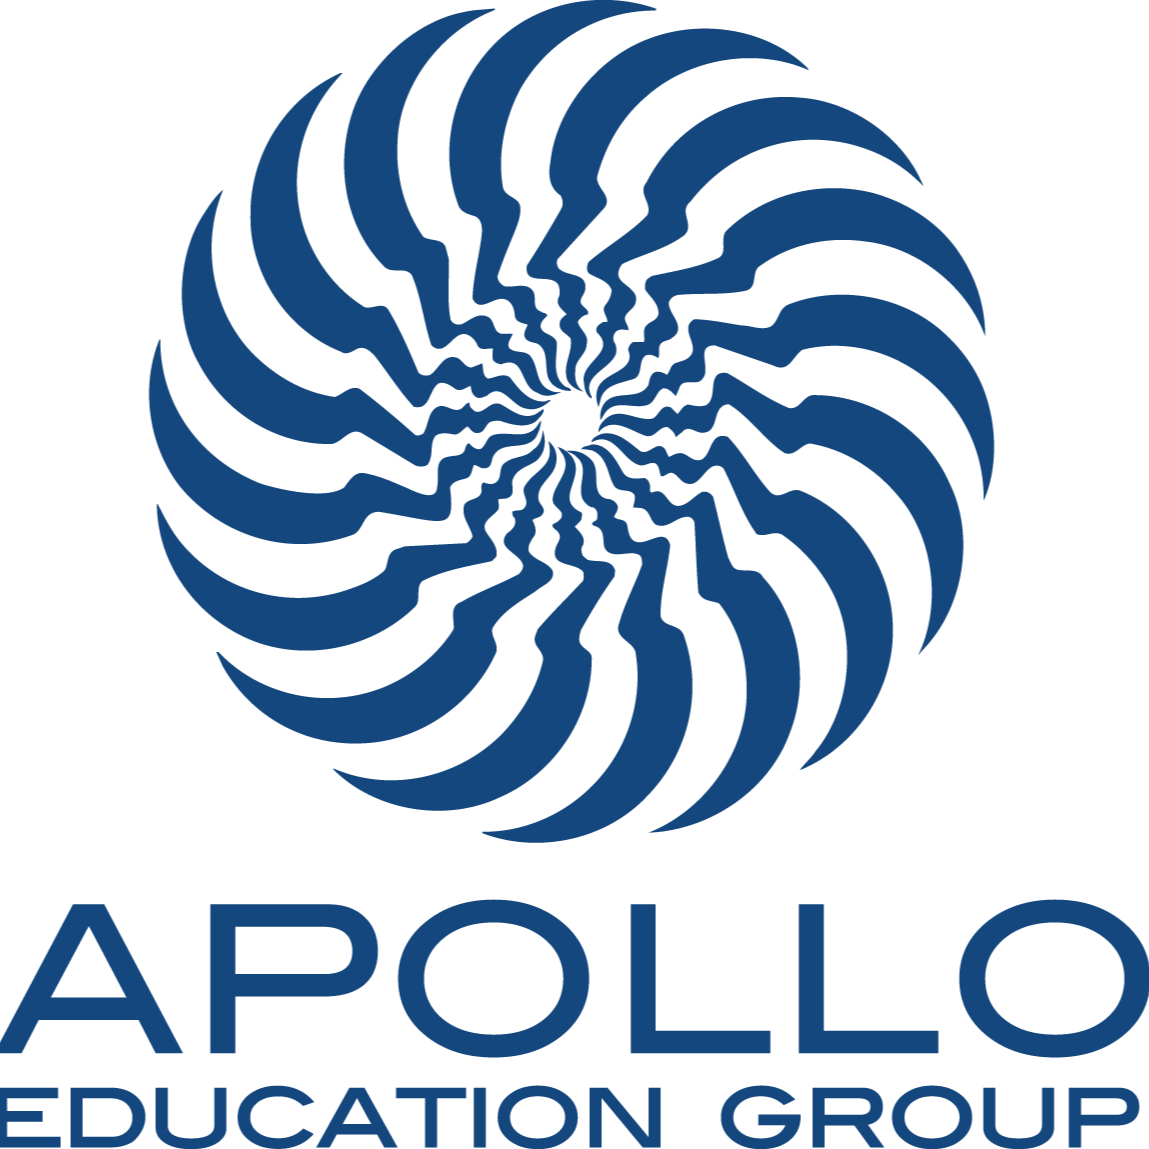 Apollo Education Group logo